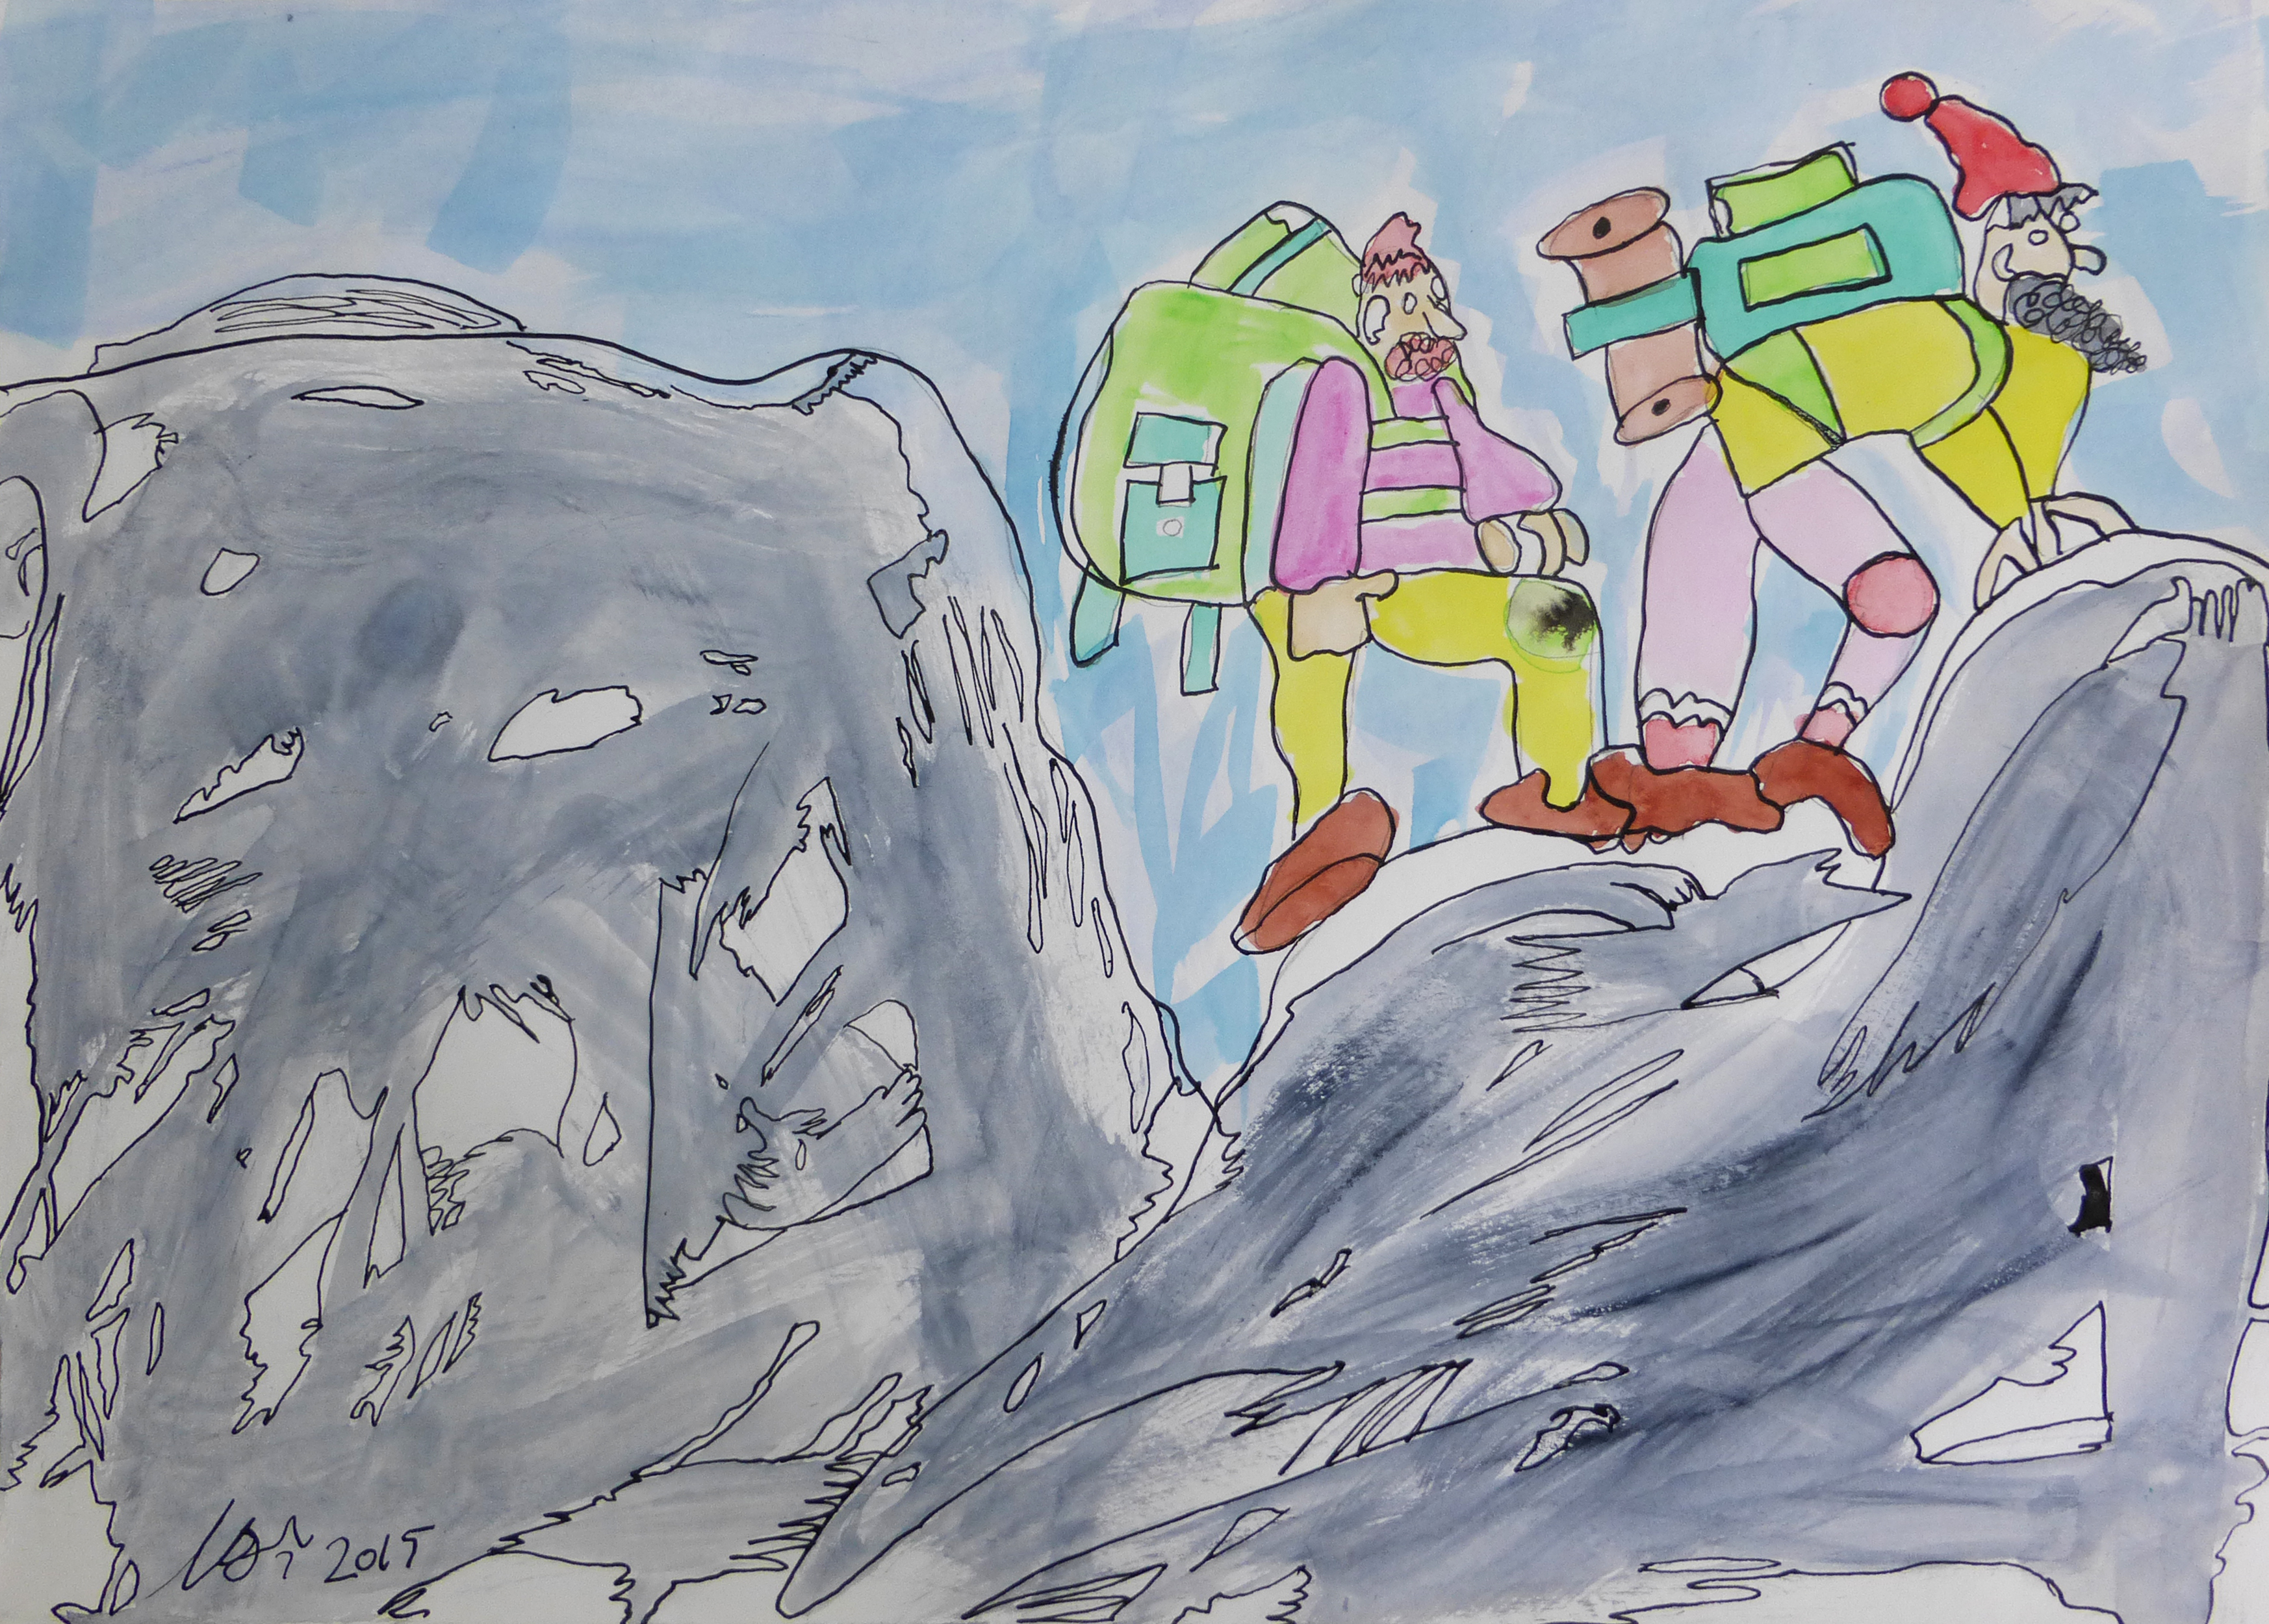 Artwork of the Week – Mountain Climbers by Cameron Morgan